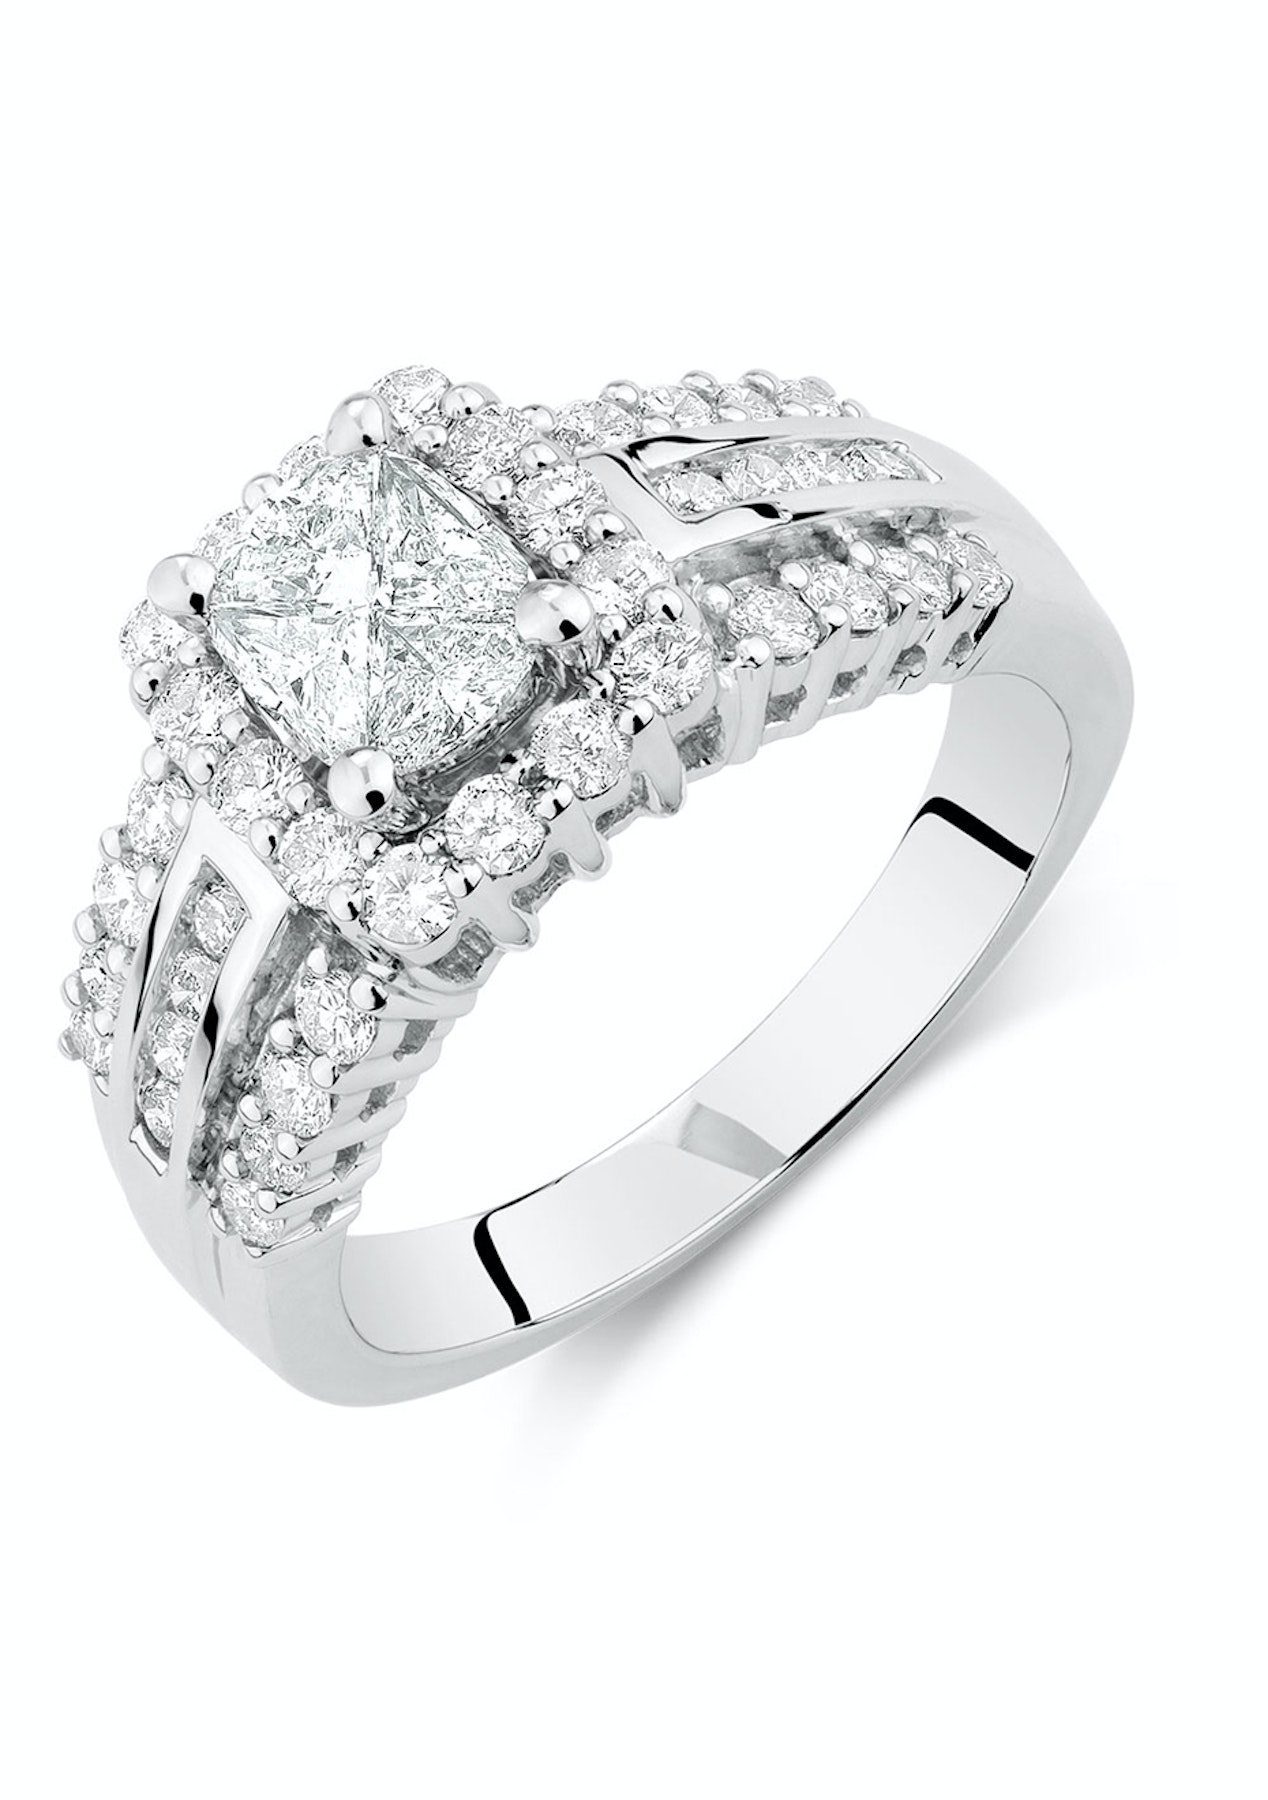 micropave beautiful saving in the ultimate diamond tricks lovely petite ct carat white gold with money engagement ring of micropav guide